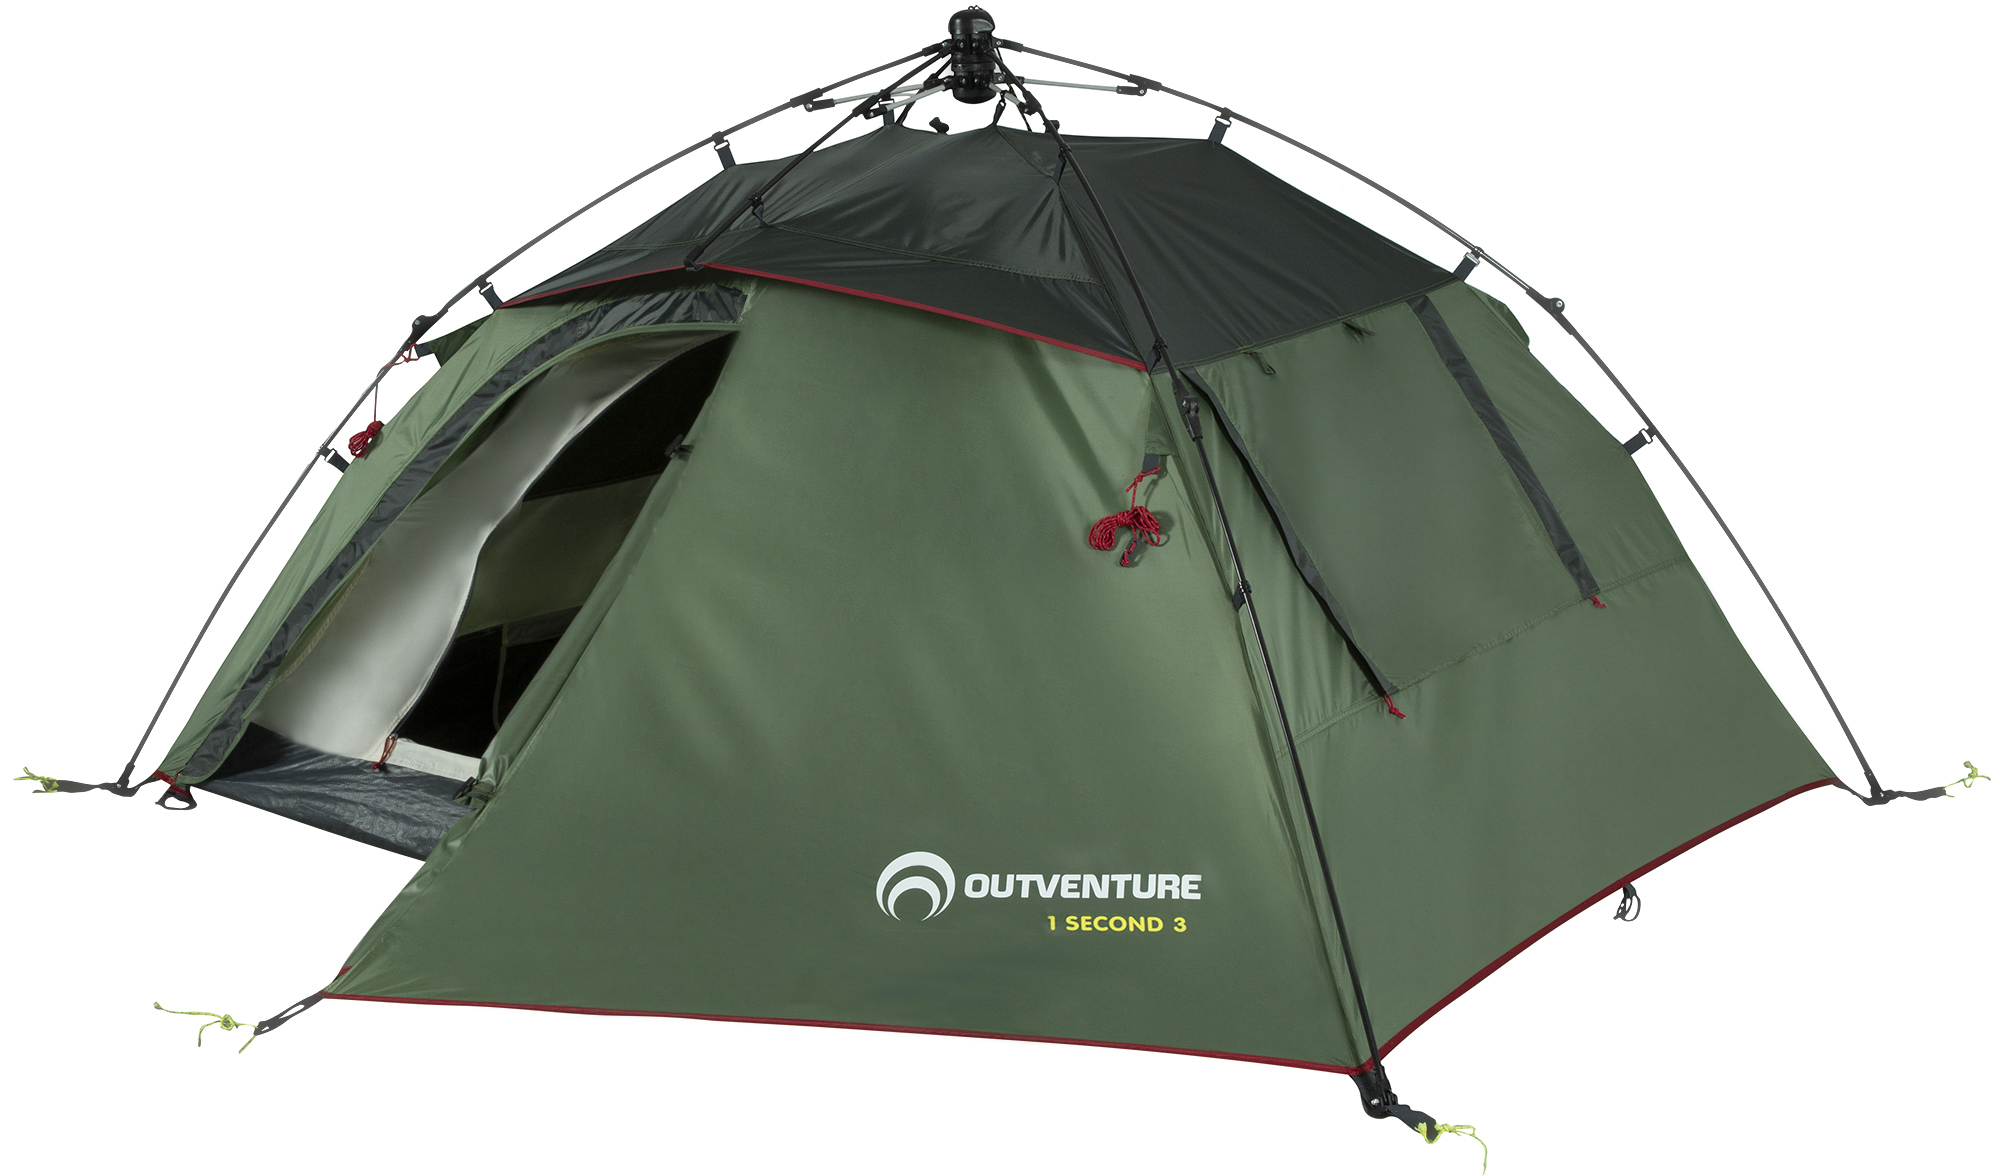 Outventure 1 SECOND TENT 3 цена и фото